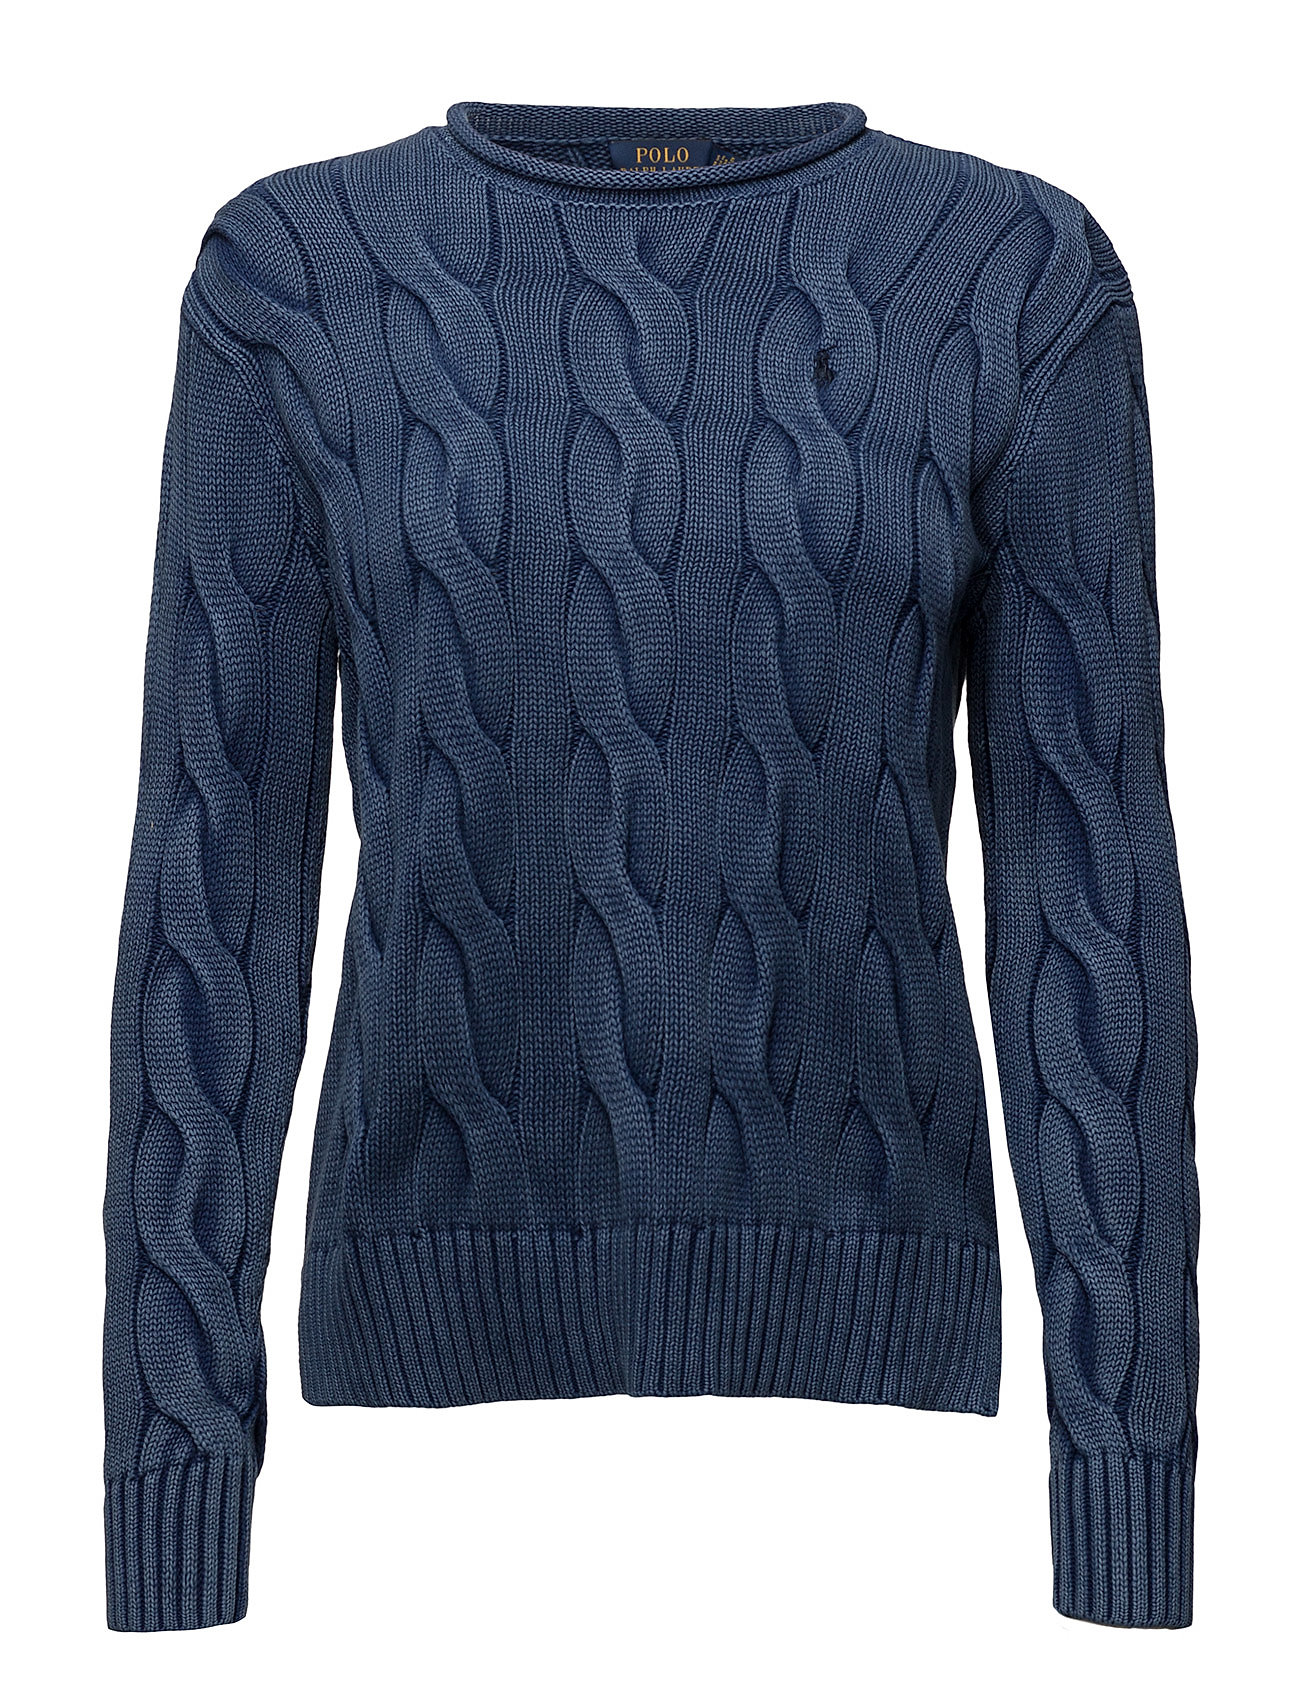 Polo Ralph Lauren Cable-Knit Rollneck Sweater